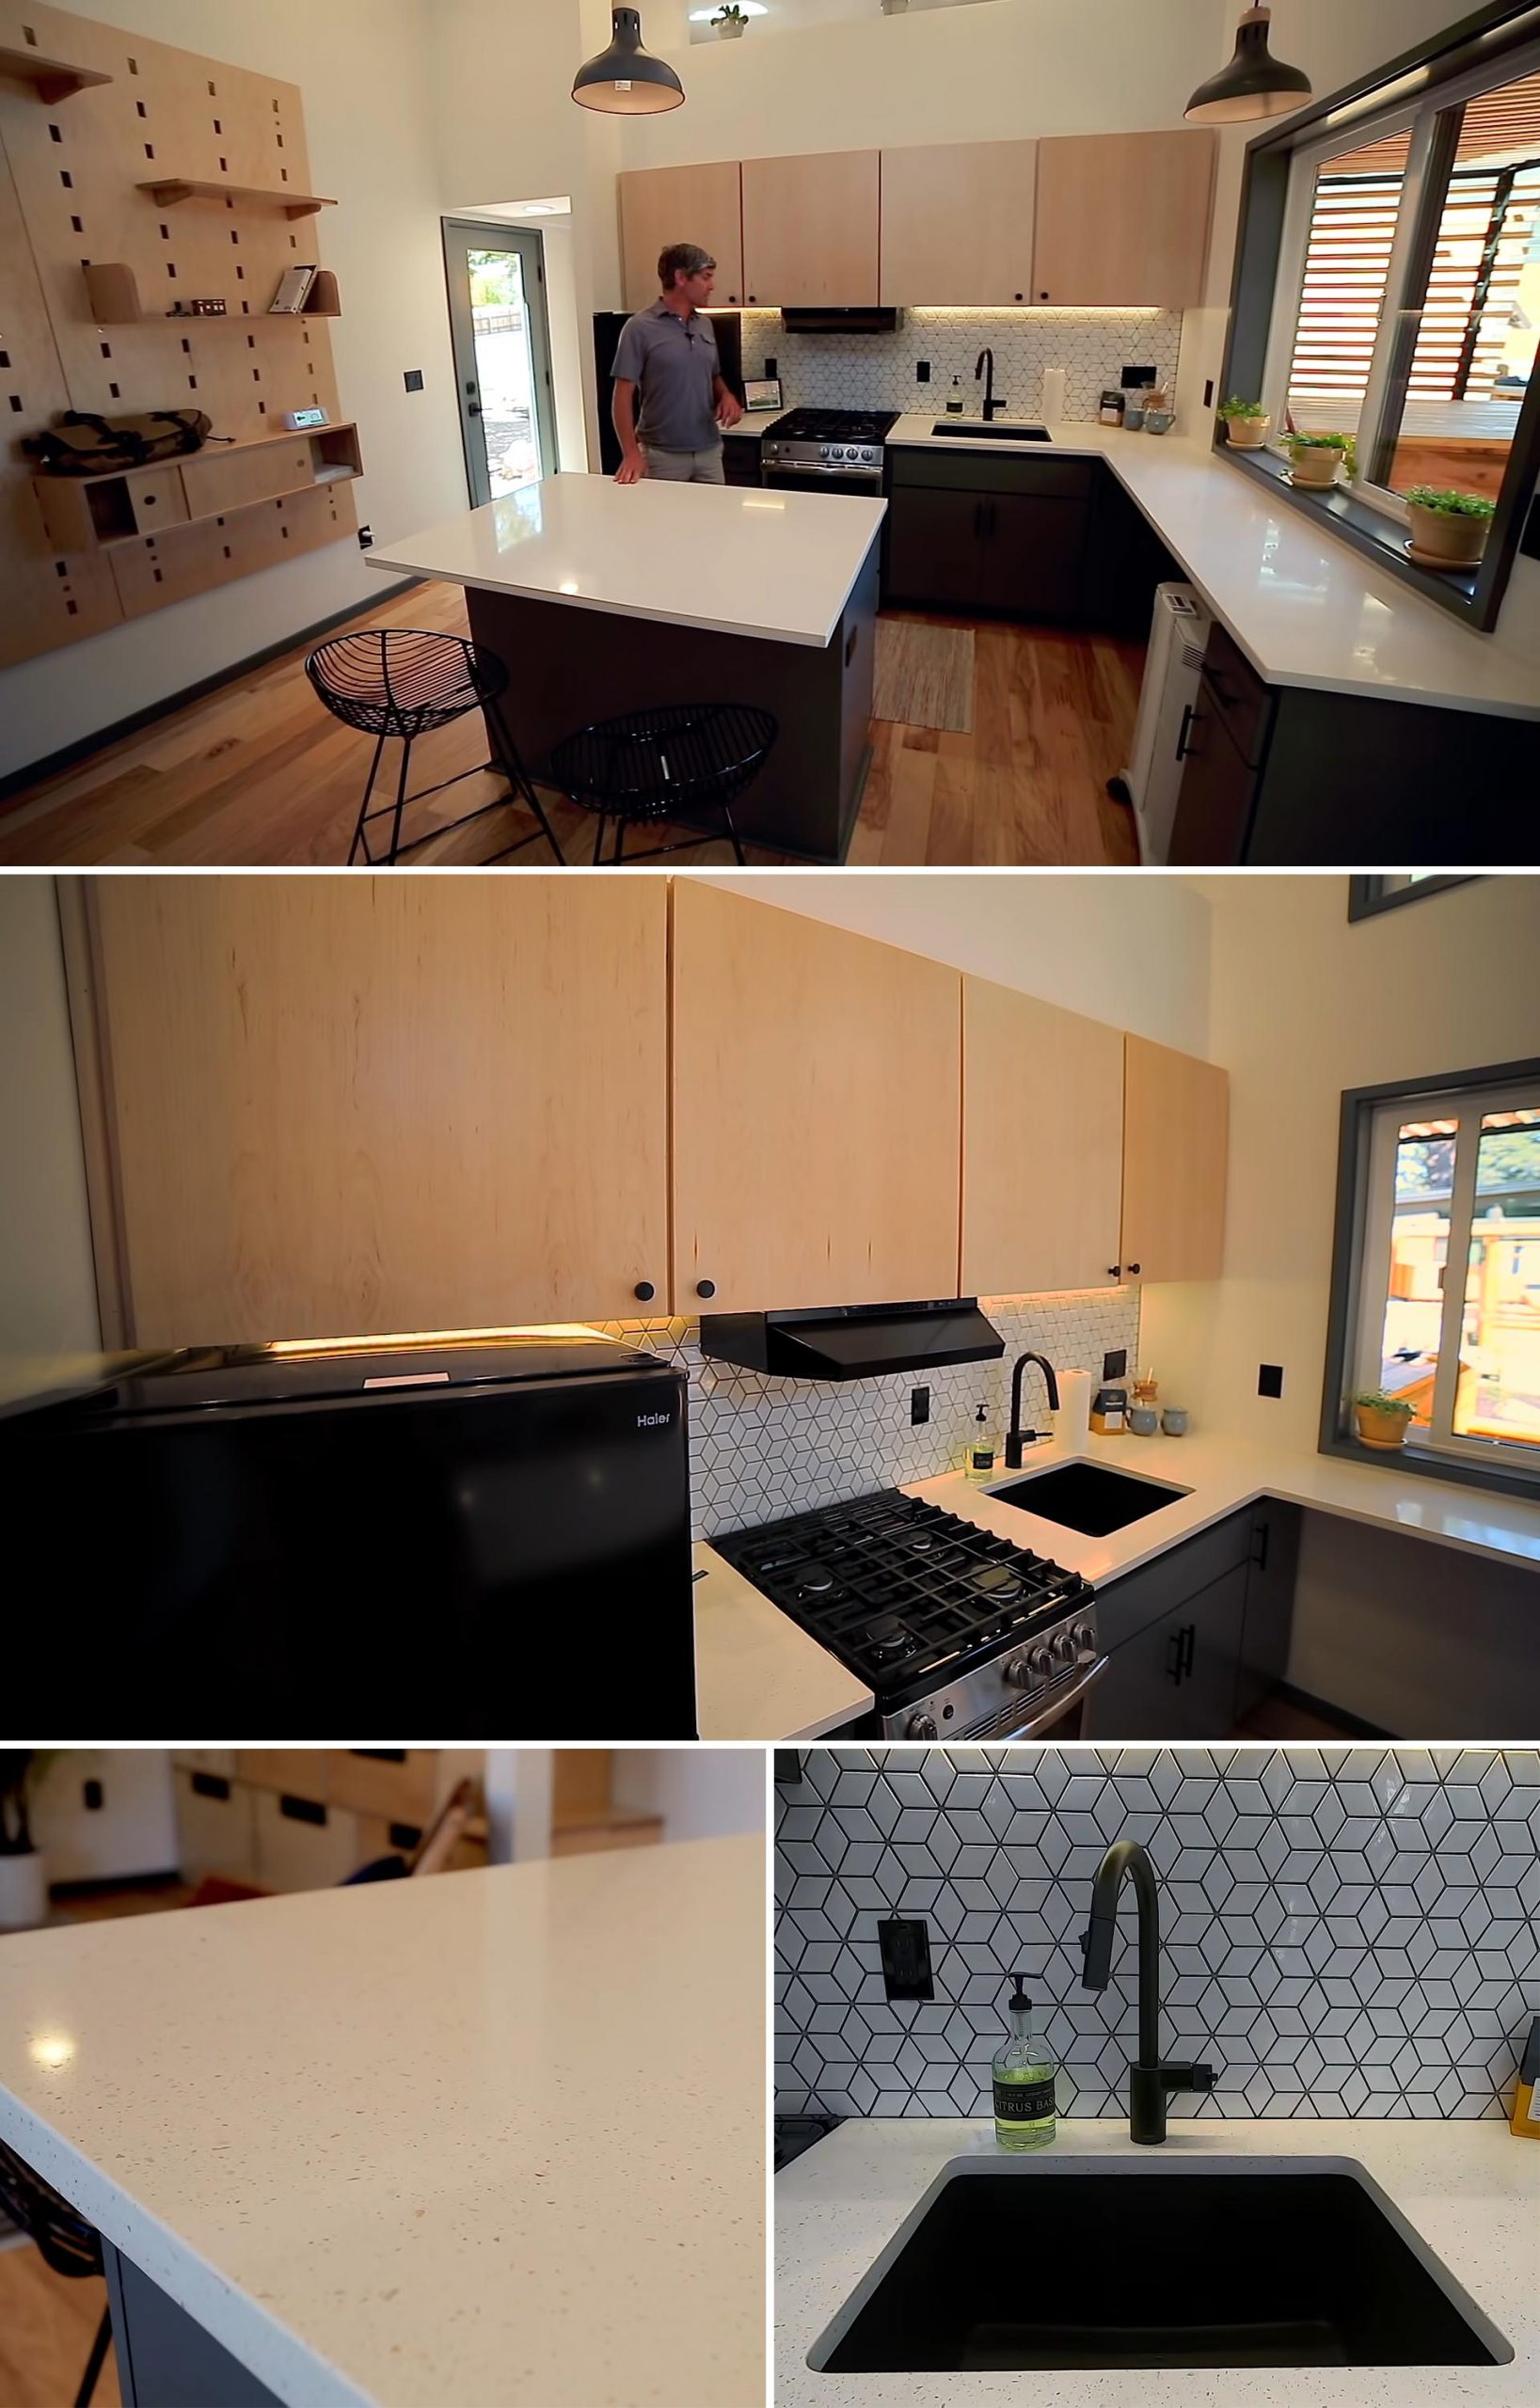 A tiny house kitchen with quartz countertops, 24 inch appliances, counter space, and a large black sink.